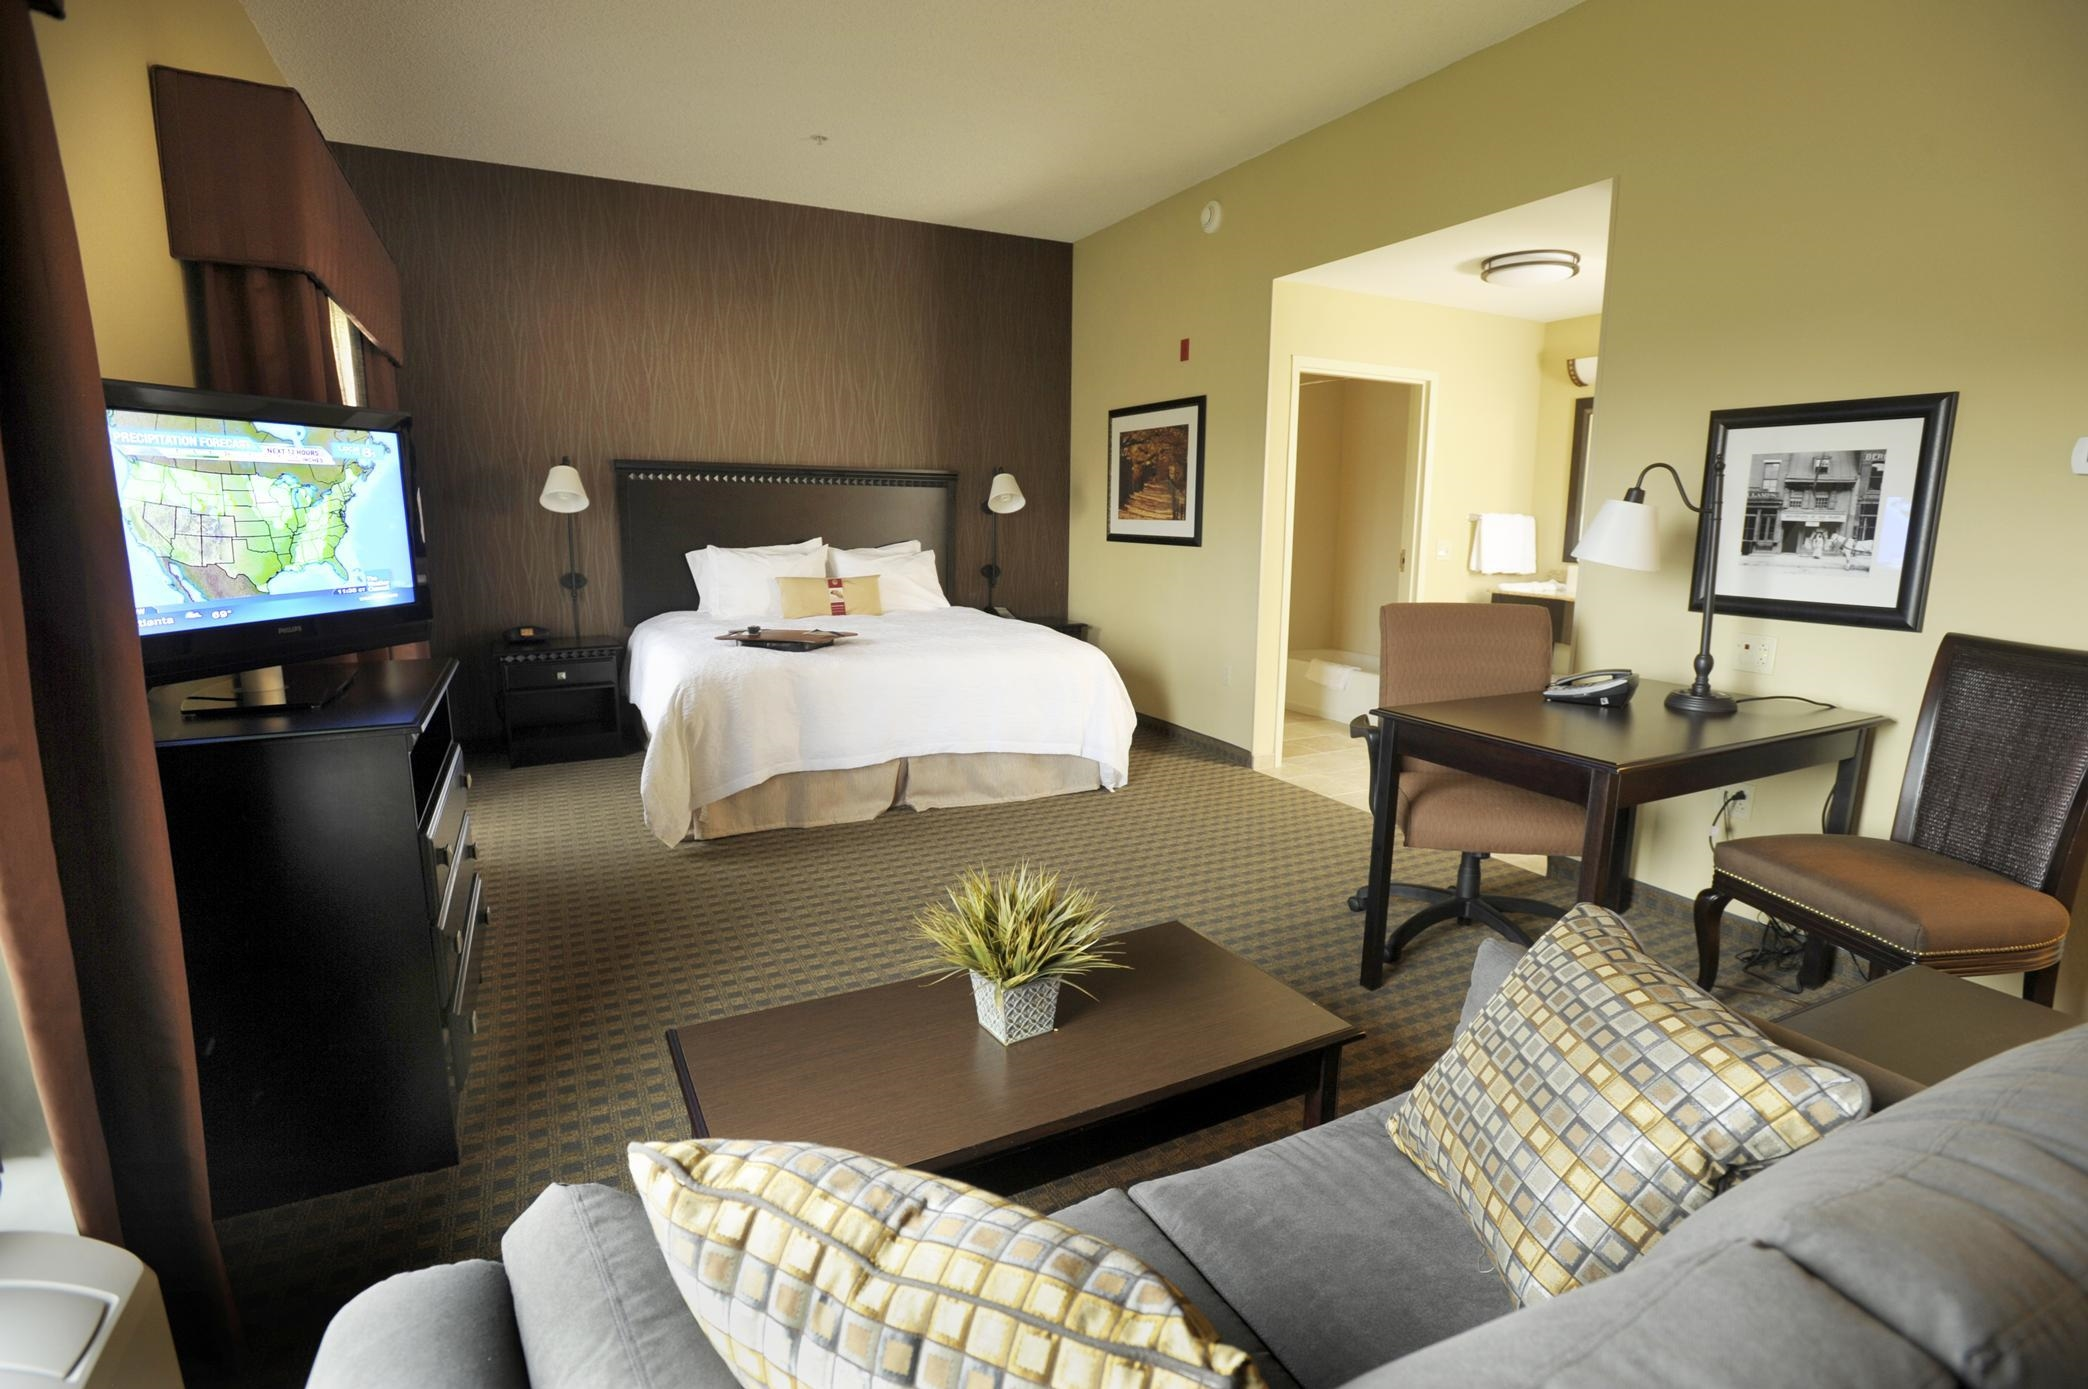 Hampton Inn & Suites Chadds Ford image 34